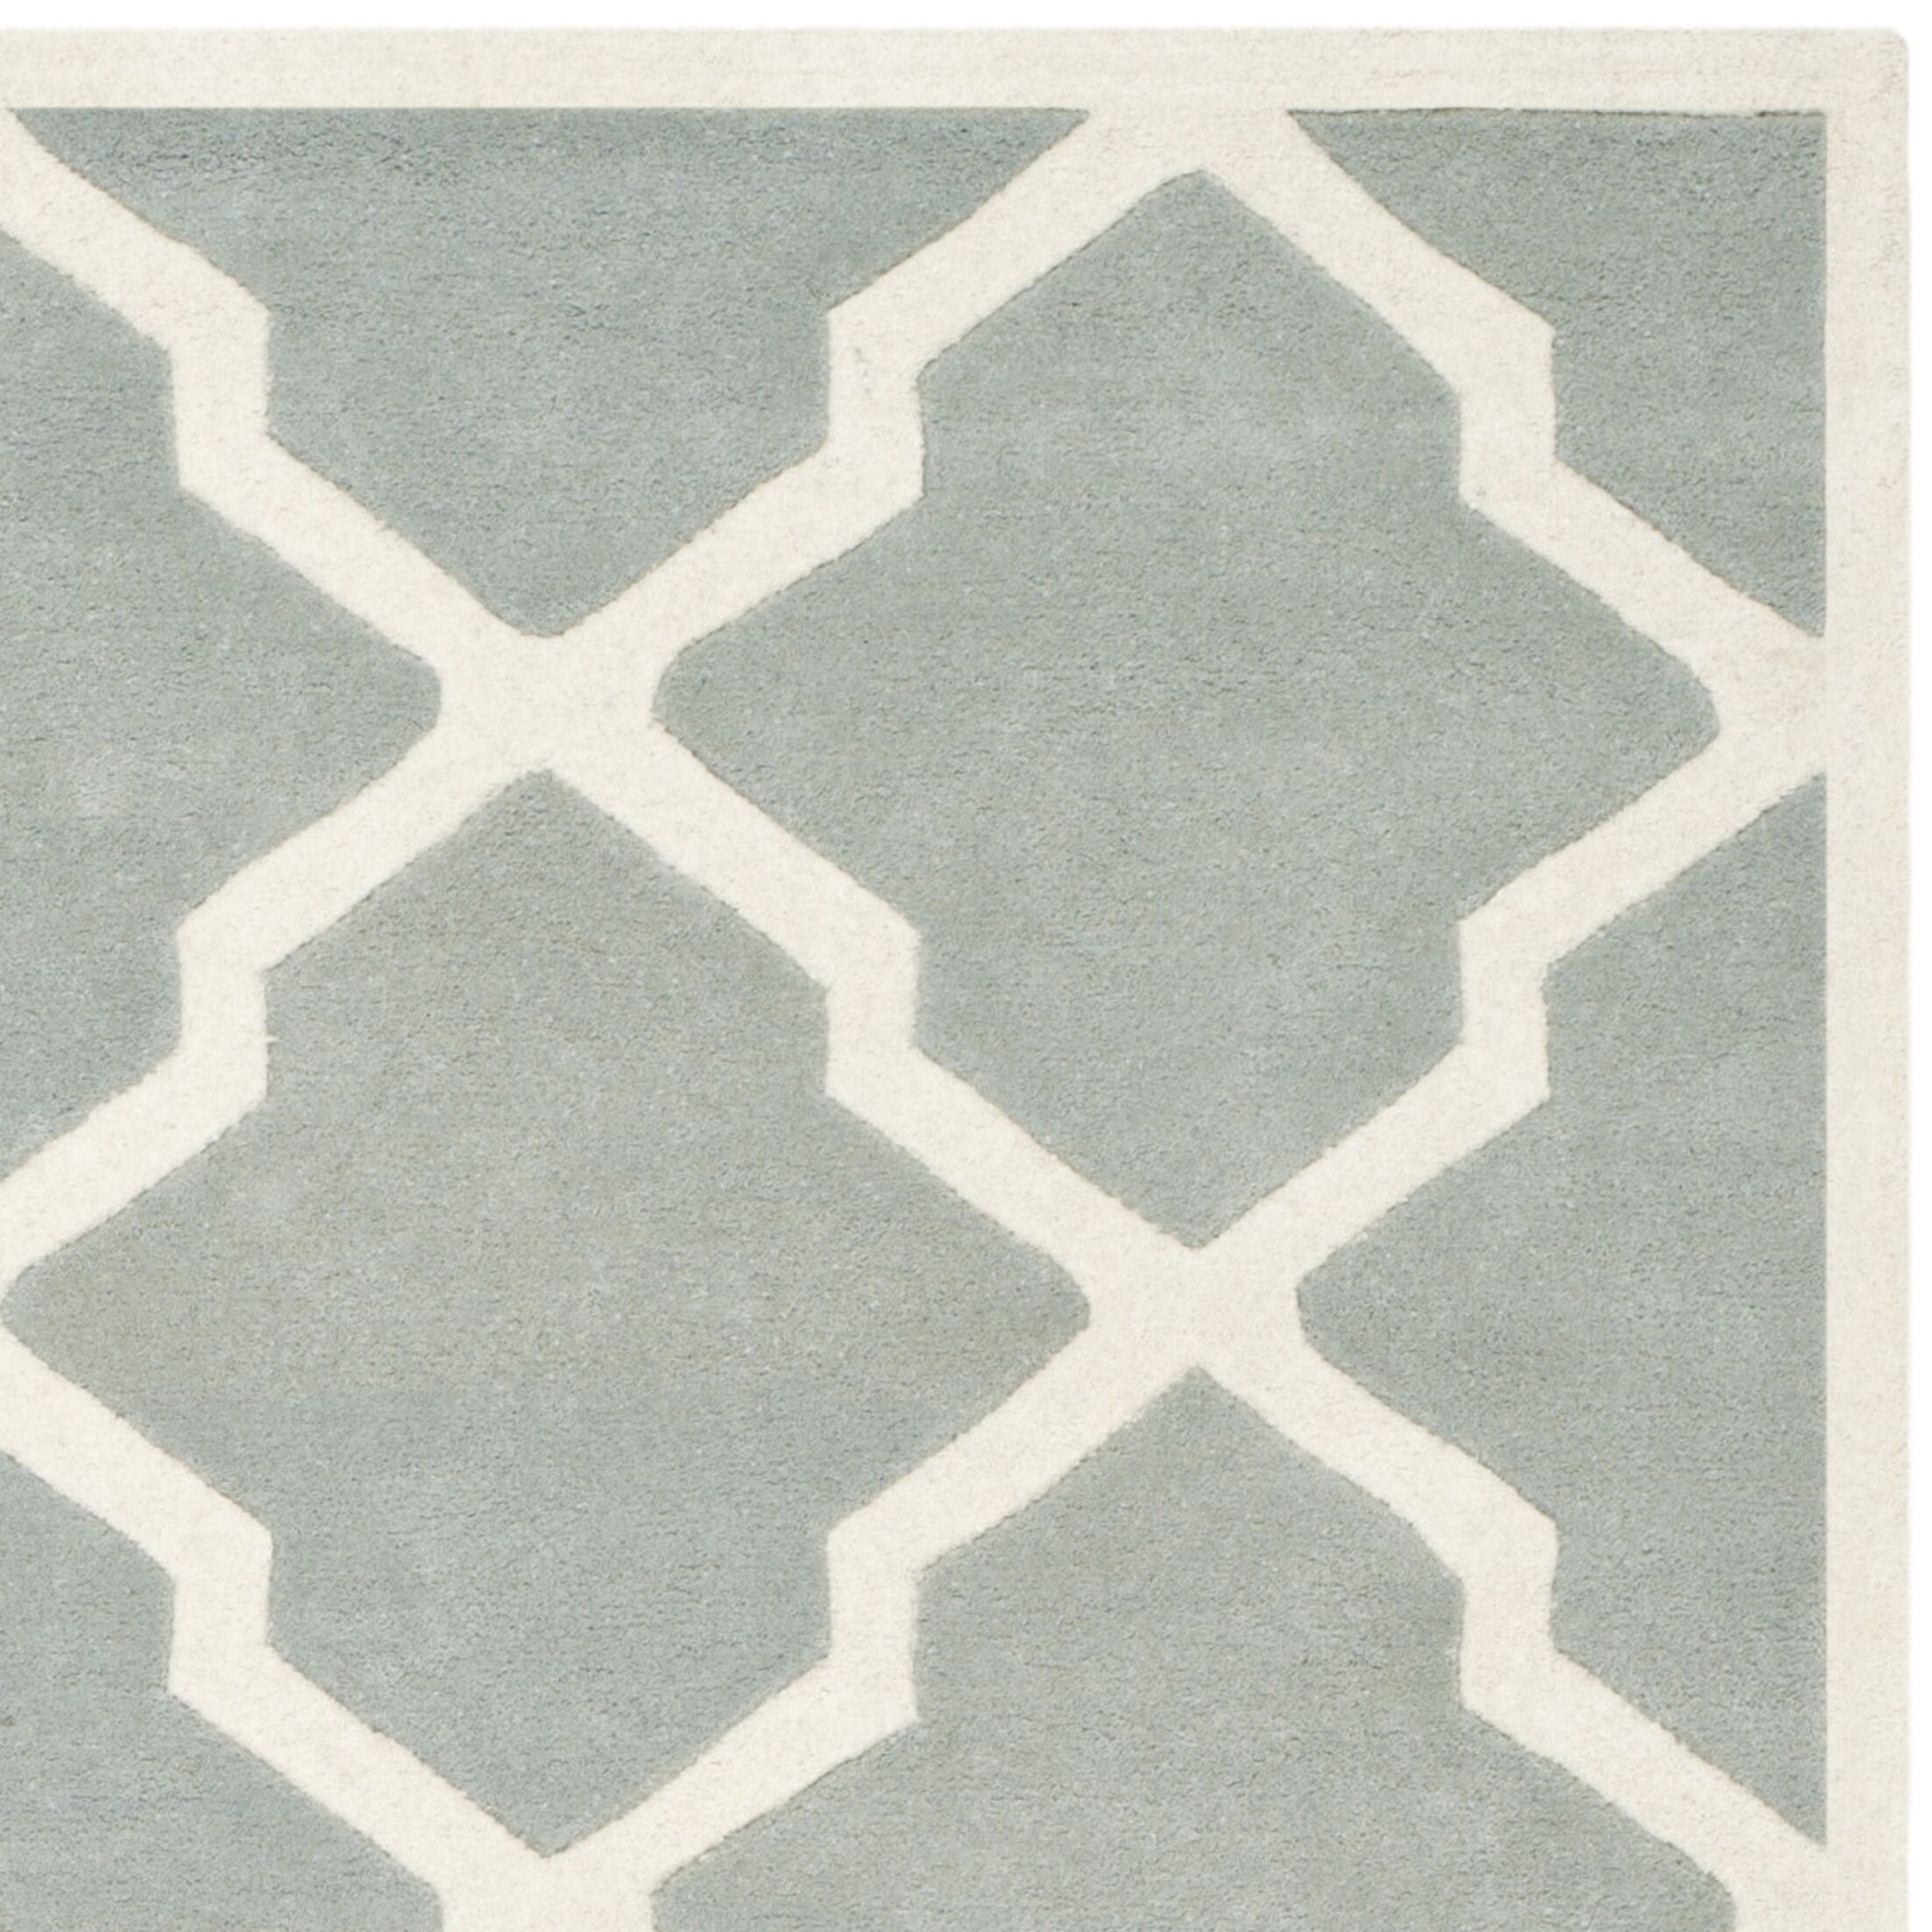 Wilkin Hand-Tufted Wool Gray/Ivory Area Rug Rug Size: Rectangle 10' x 14'